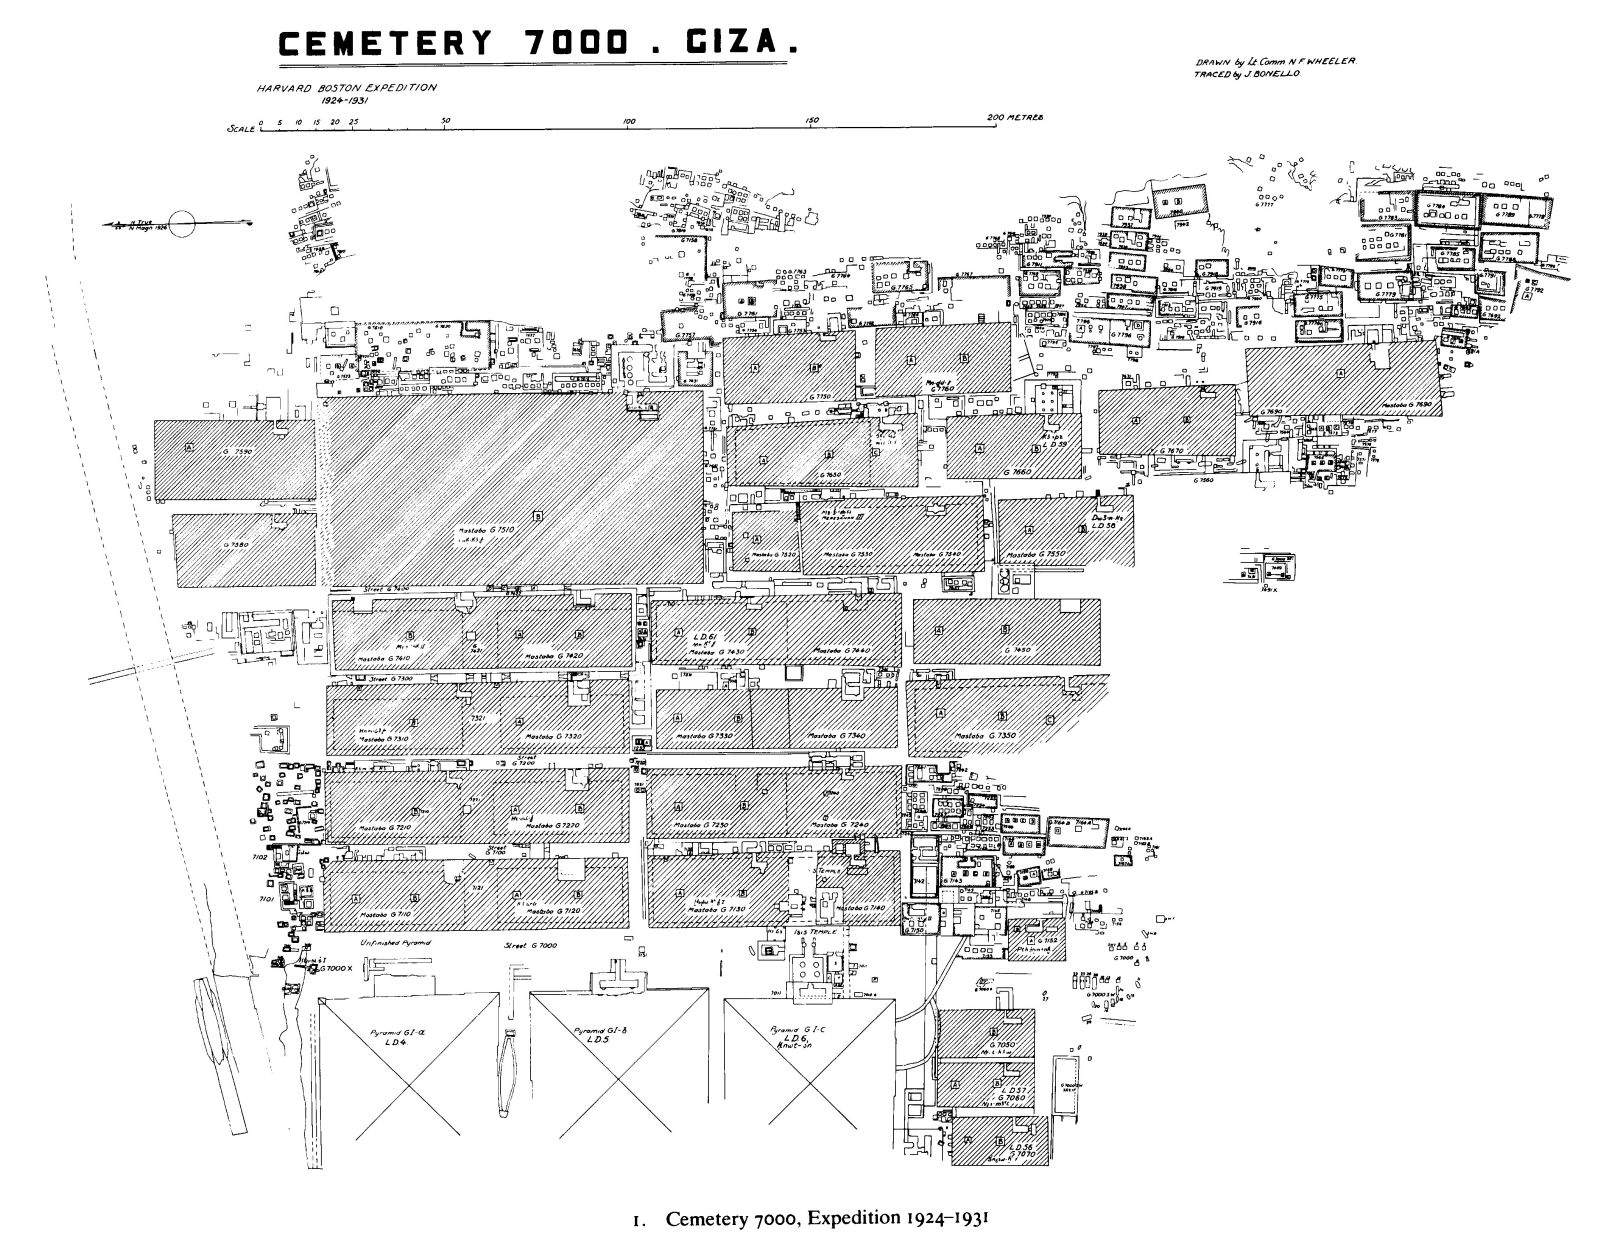 Maps and plans: Plan of Cemetery 7000